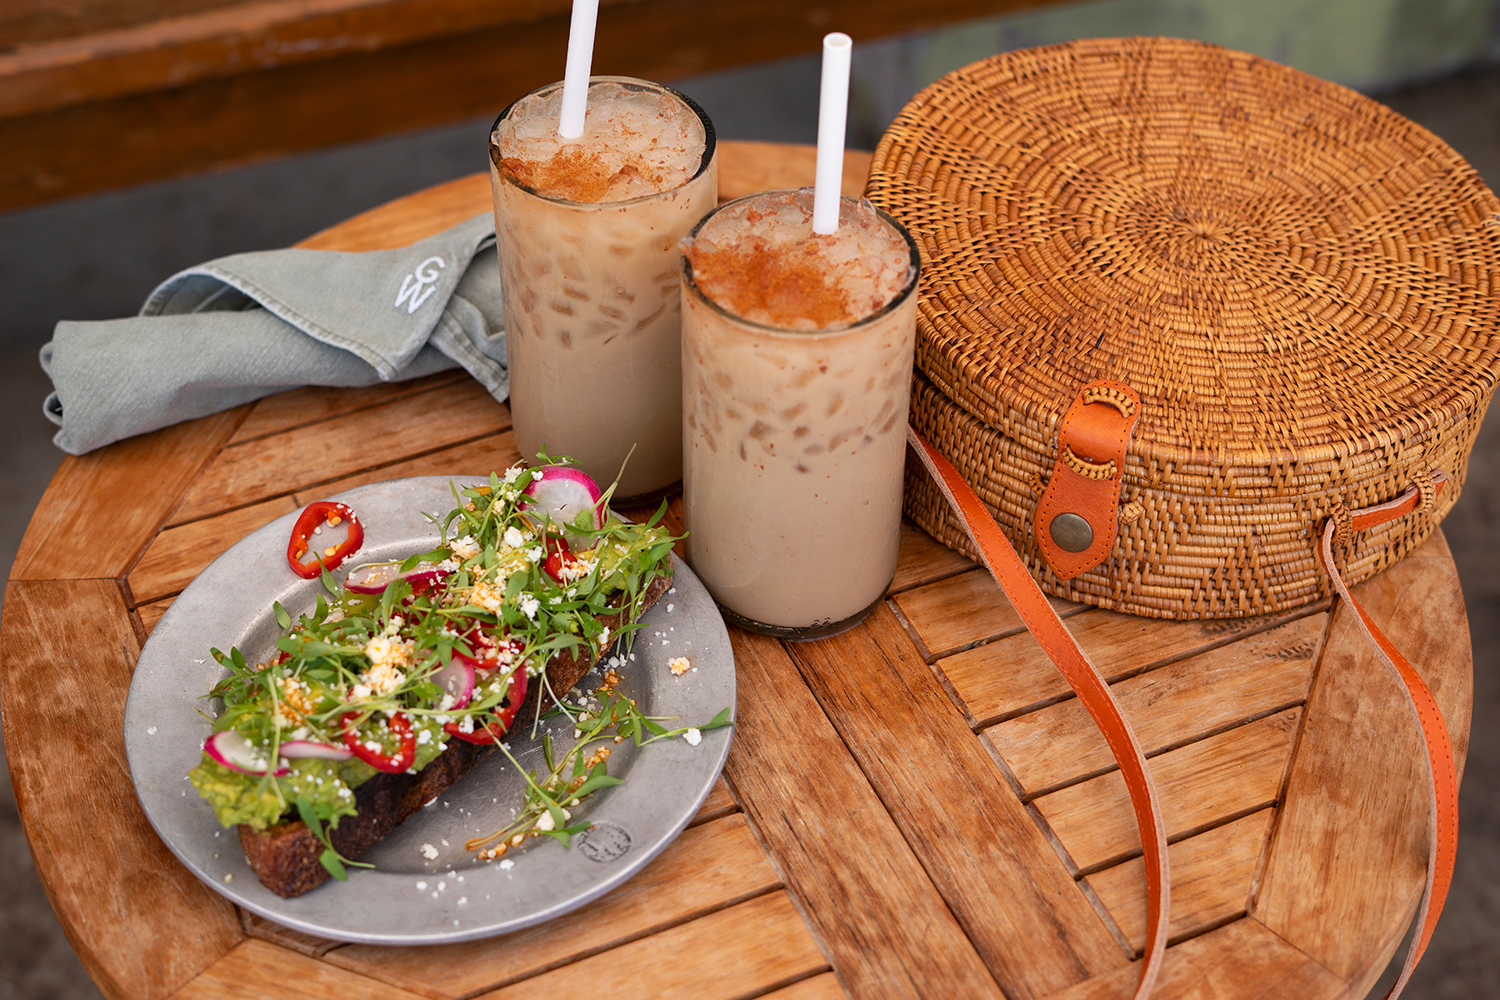 03luckybrand-basketbag-chai-latte-avocado-toast-venice